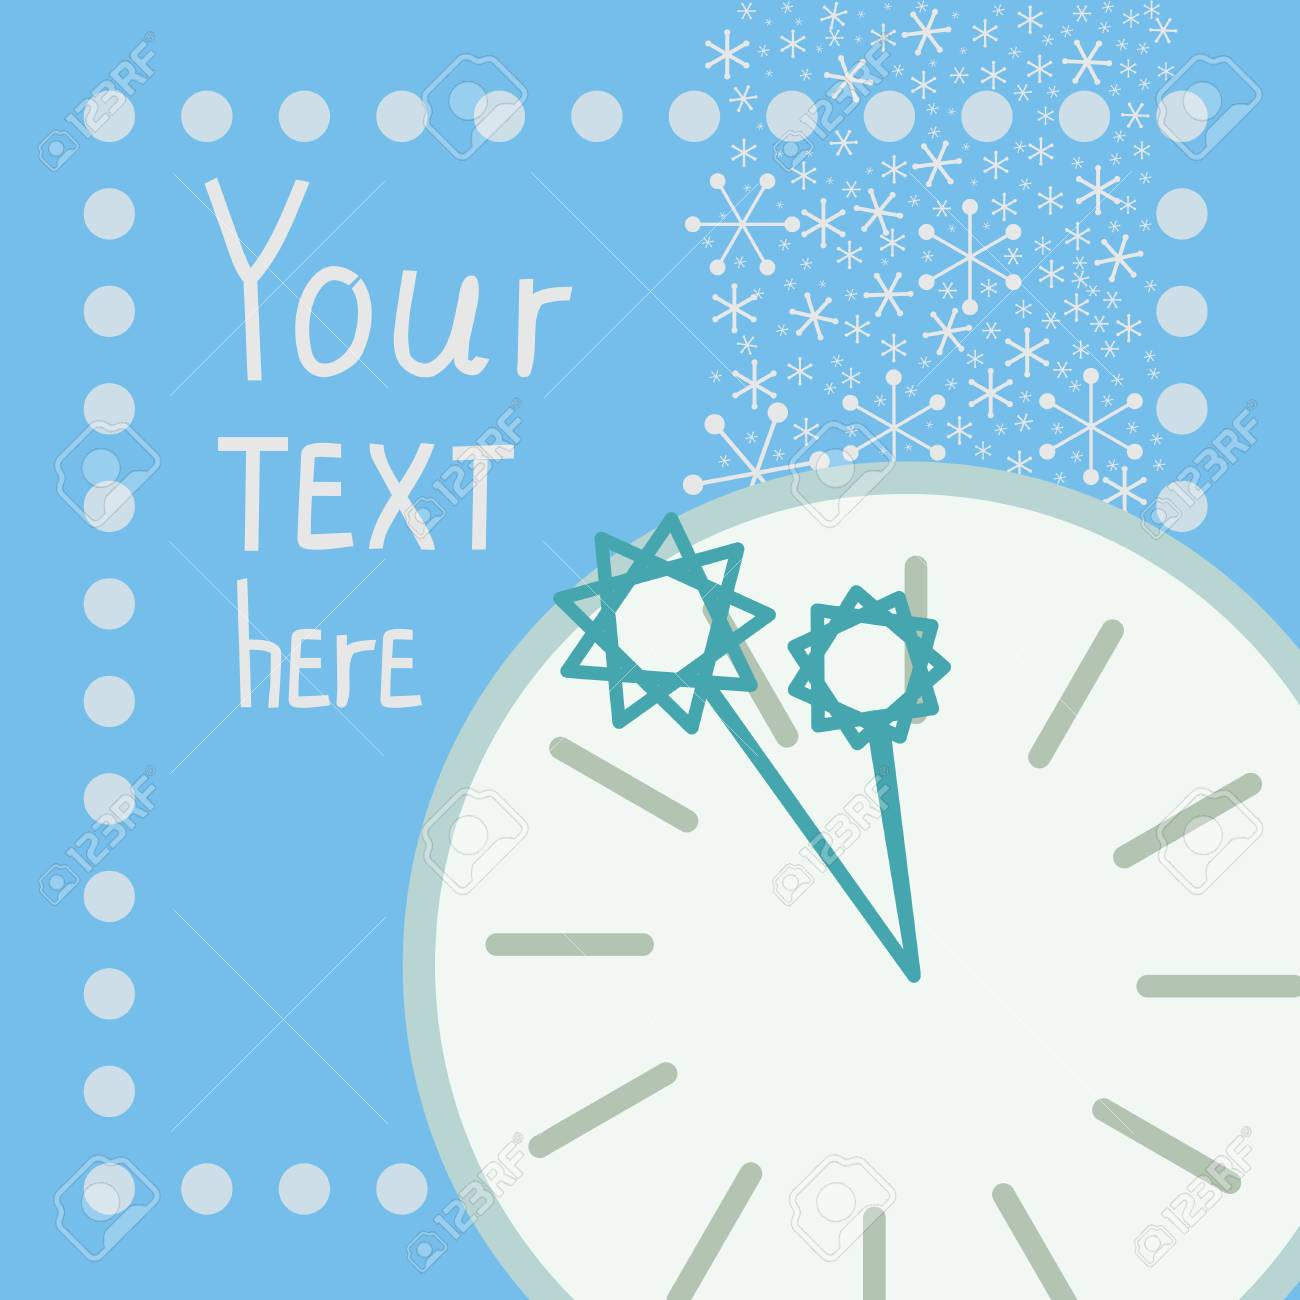 blue background with snowflakes, round clock and arrows Stock Vector - 14083885